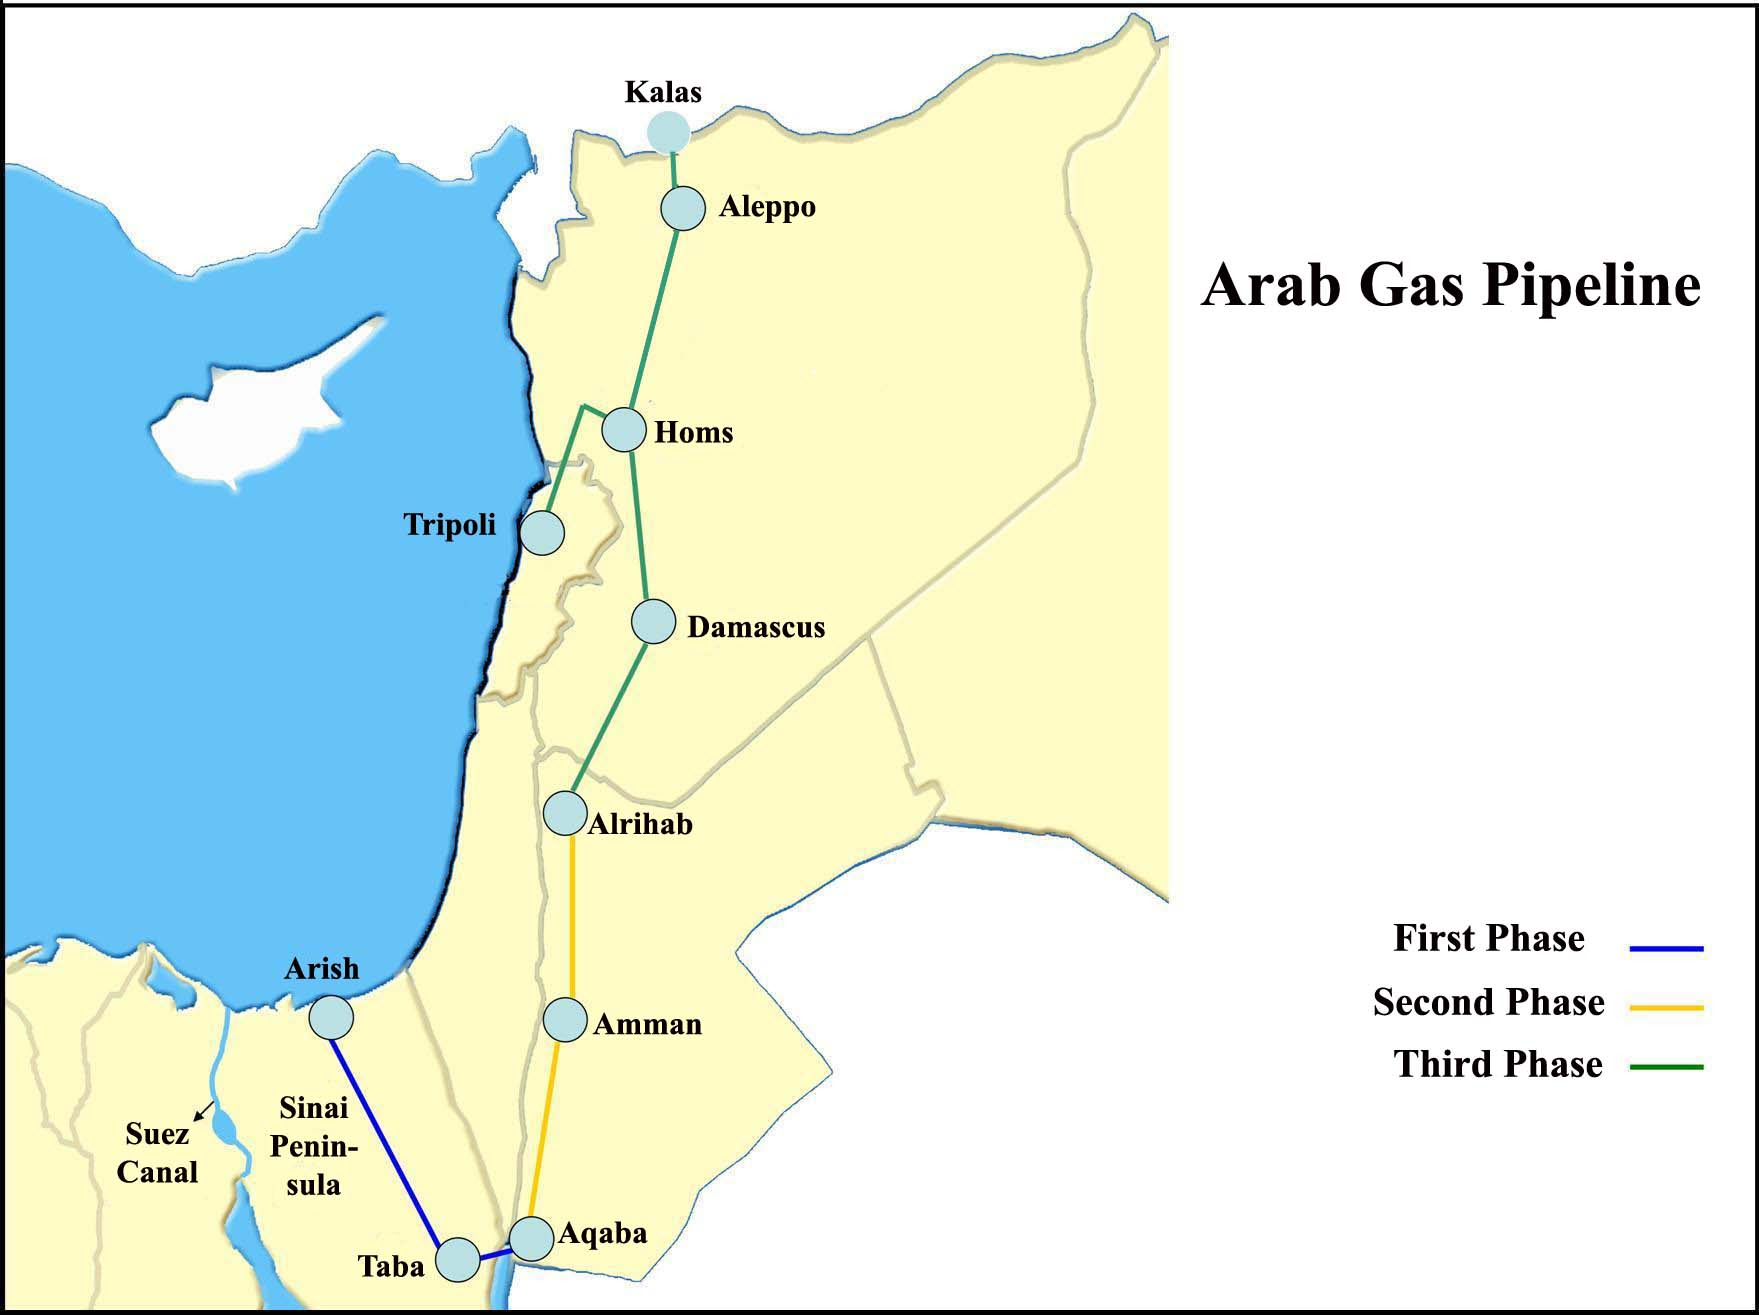 arabGasPipeline The Wars in the Middle East and North Africa Are NOT Just About Oil ... Theyre Also About GAS